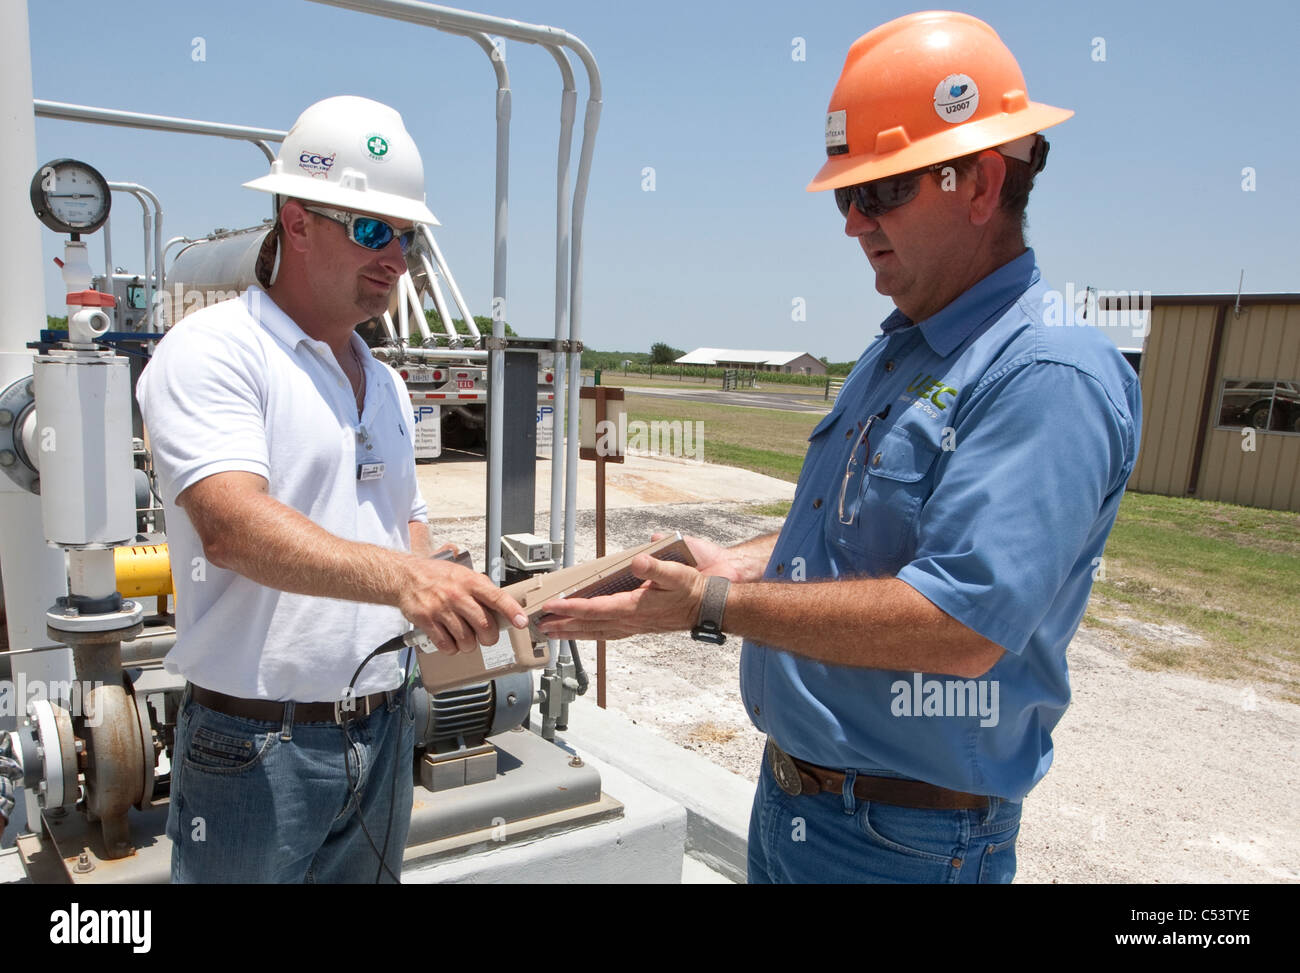 safety officer uses an Alpha detector used to scan worker for possible elevated radiation at an Uranium processing - Stock Image